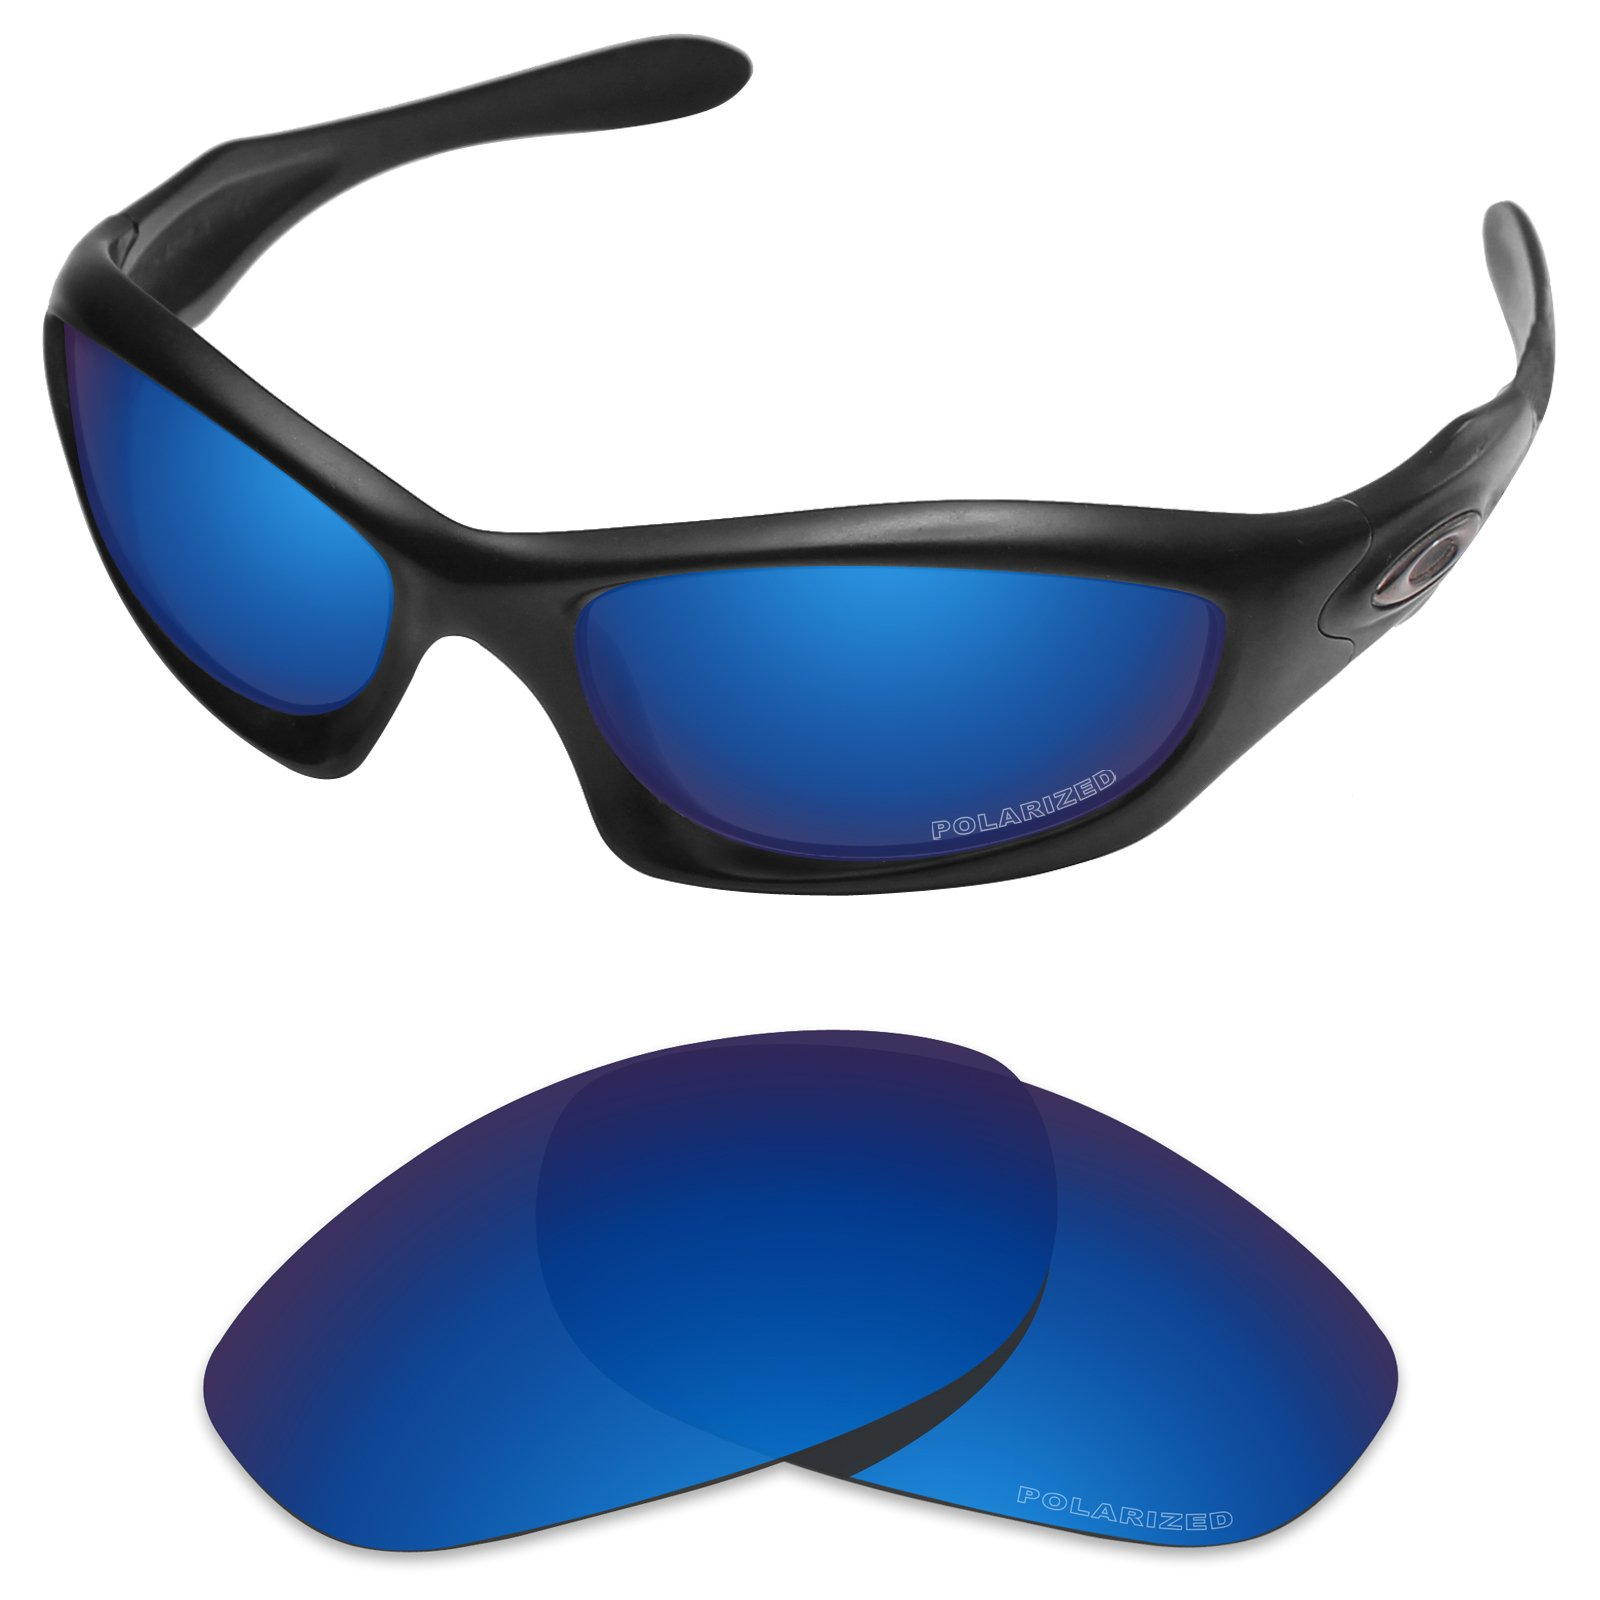 Tintart Performance Replacement Lenses for Oakley Monster Dog Sunglass Polarized Etched-Sapphire Blue by Tintart